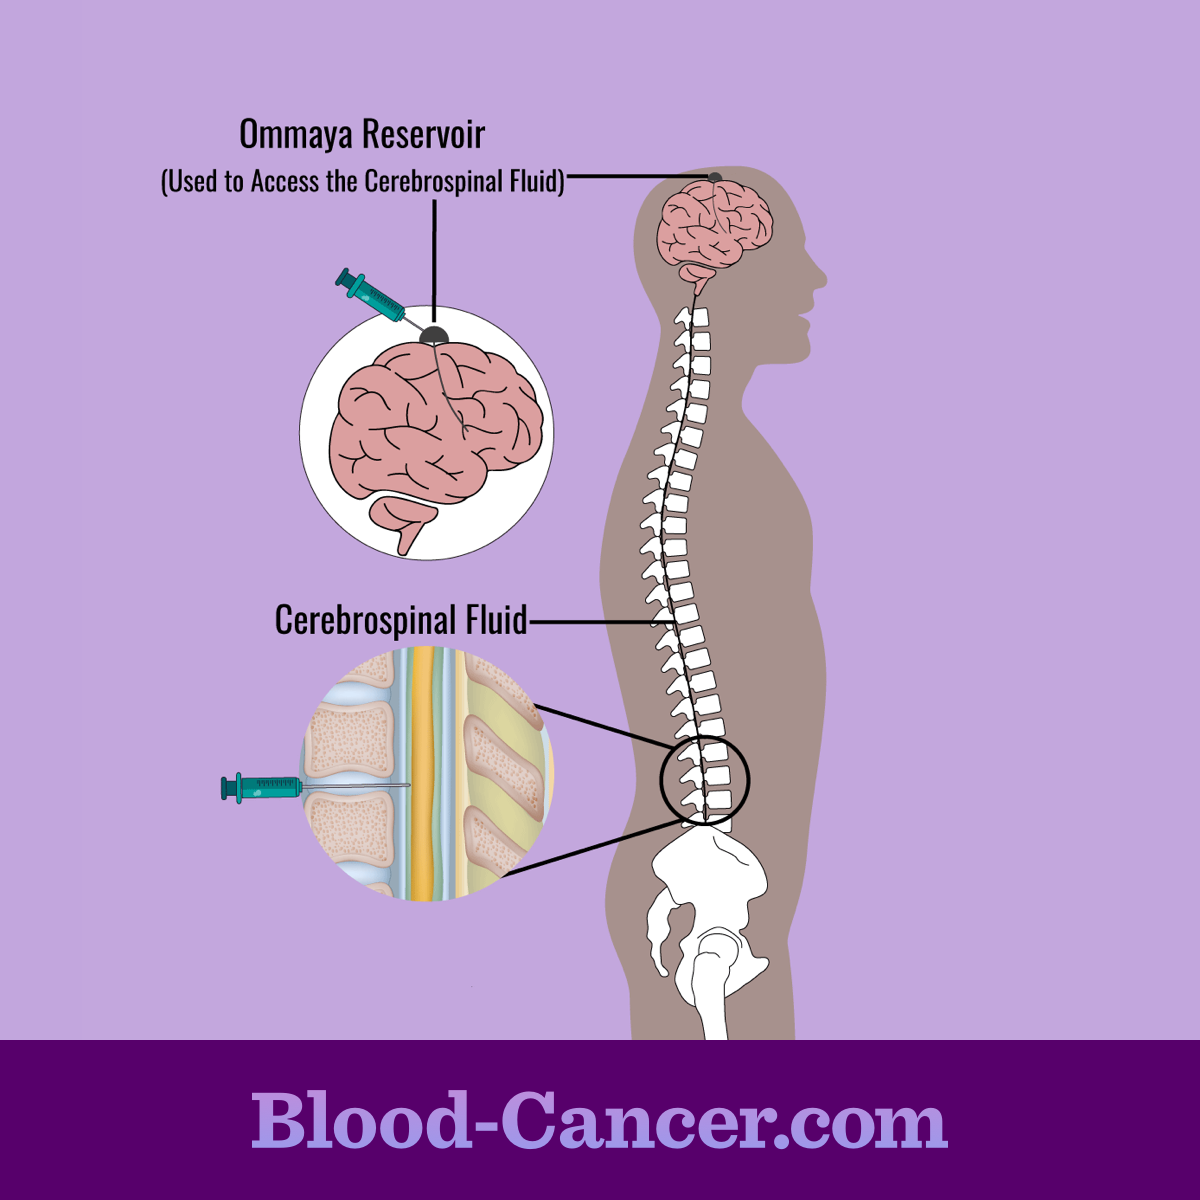 Cerebrolspinal Fluid Chemotherapy